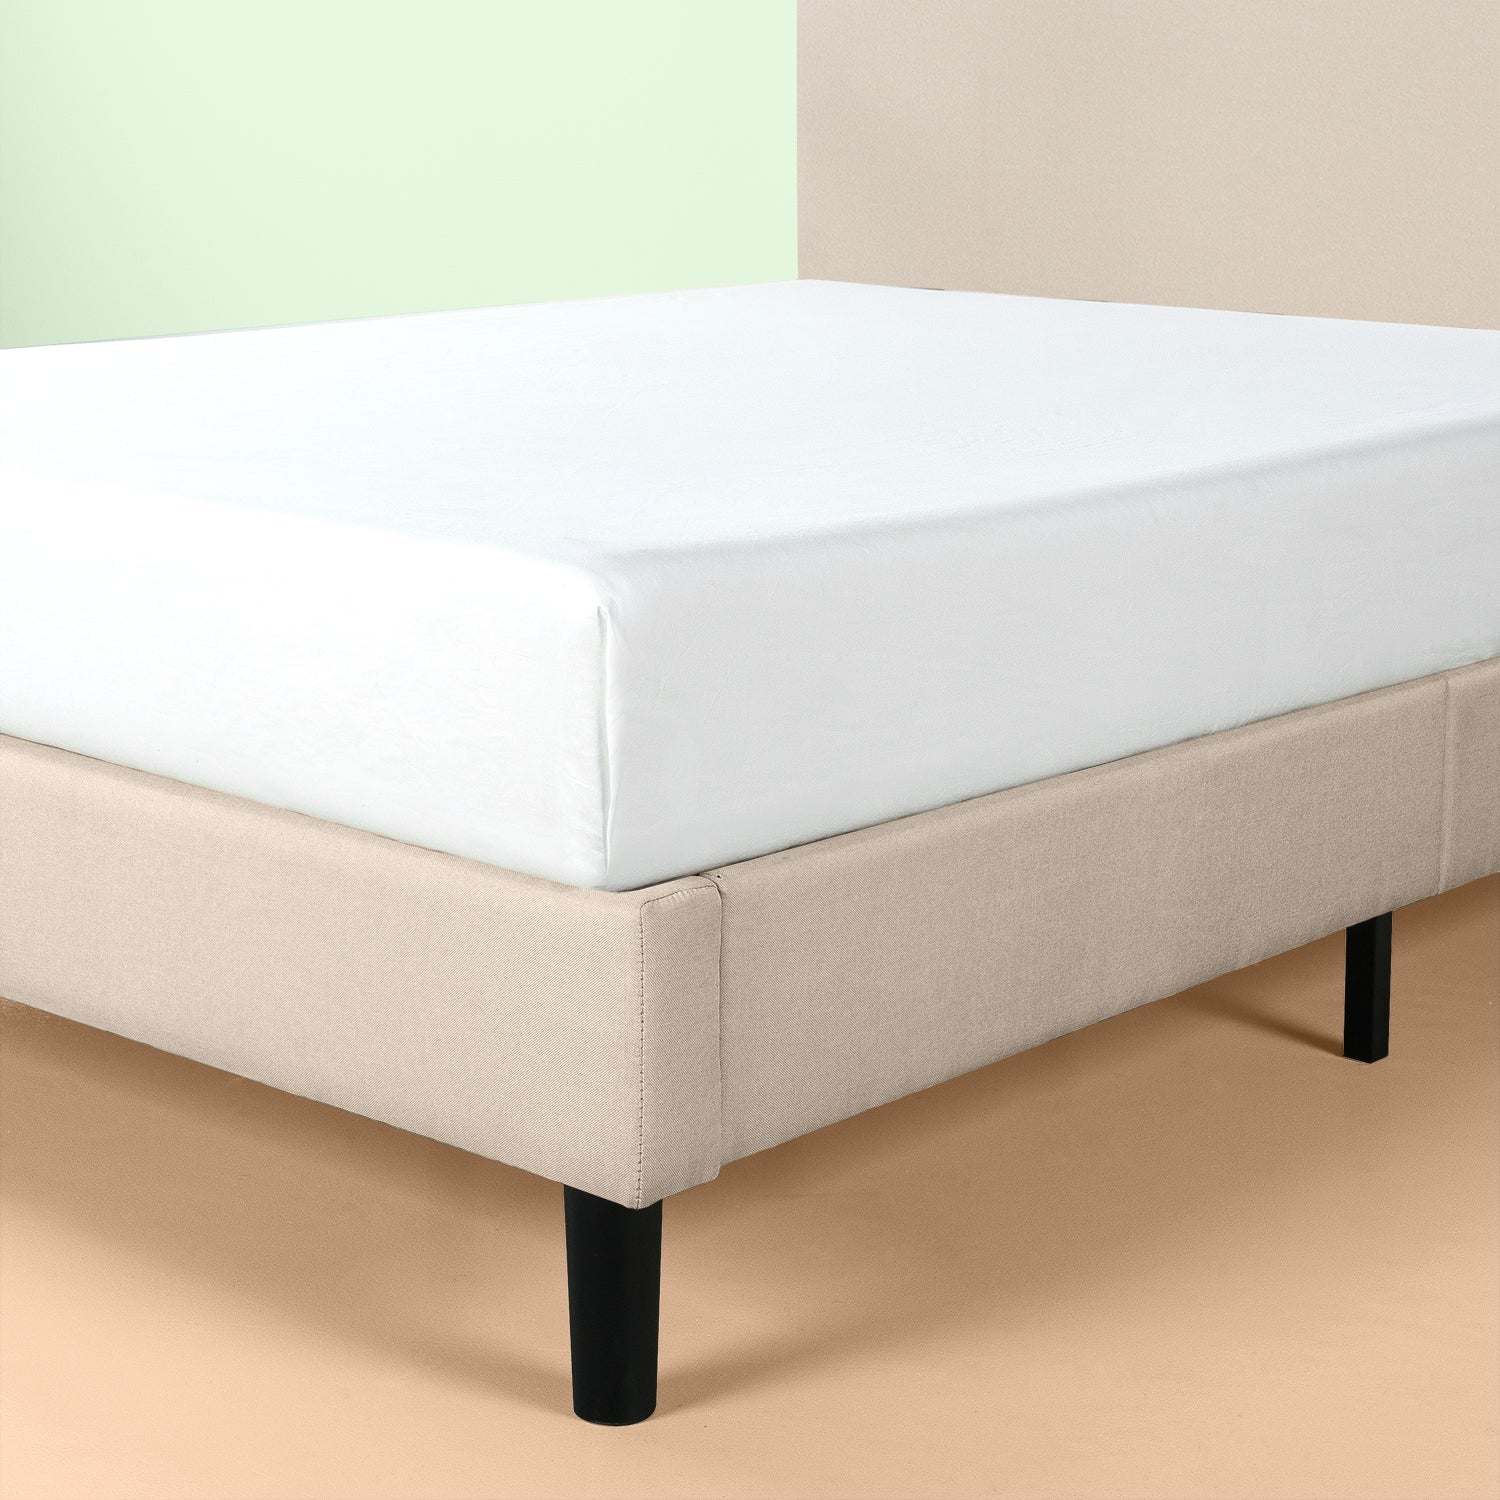 Paris Upholstered Scalloped Platform Bed Frame Zinus